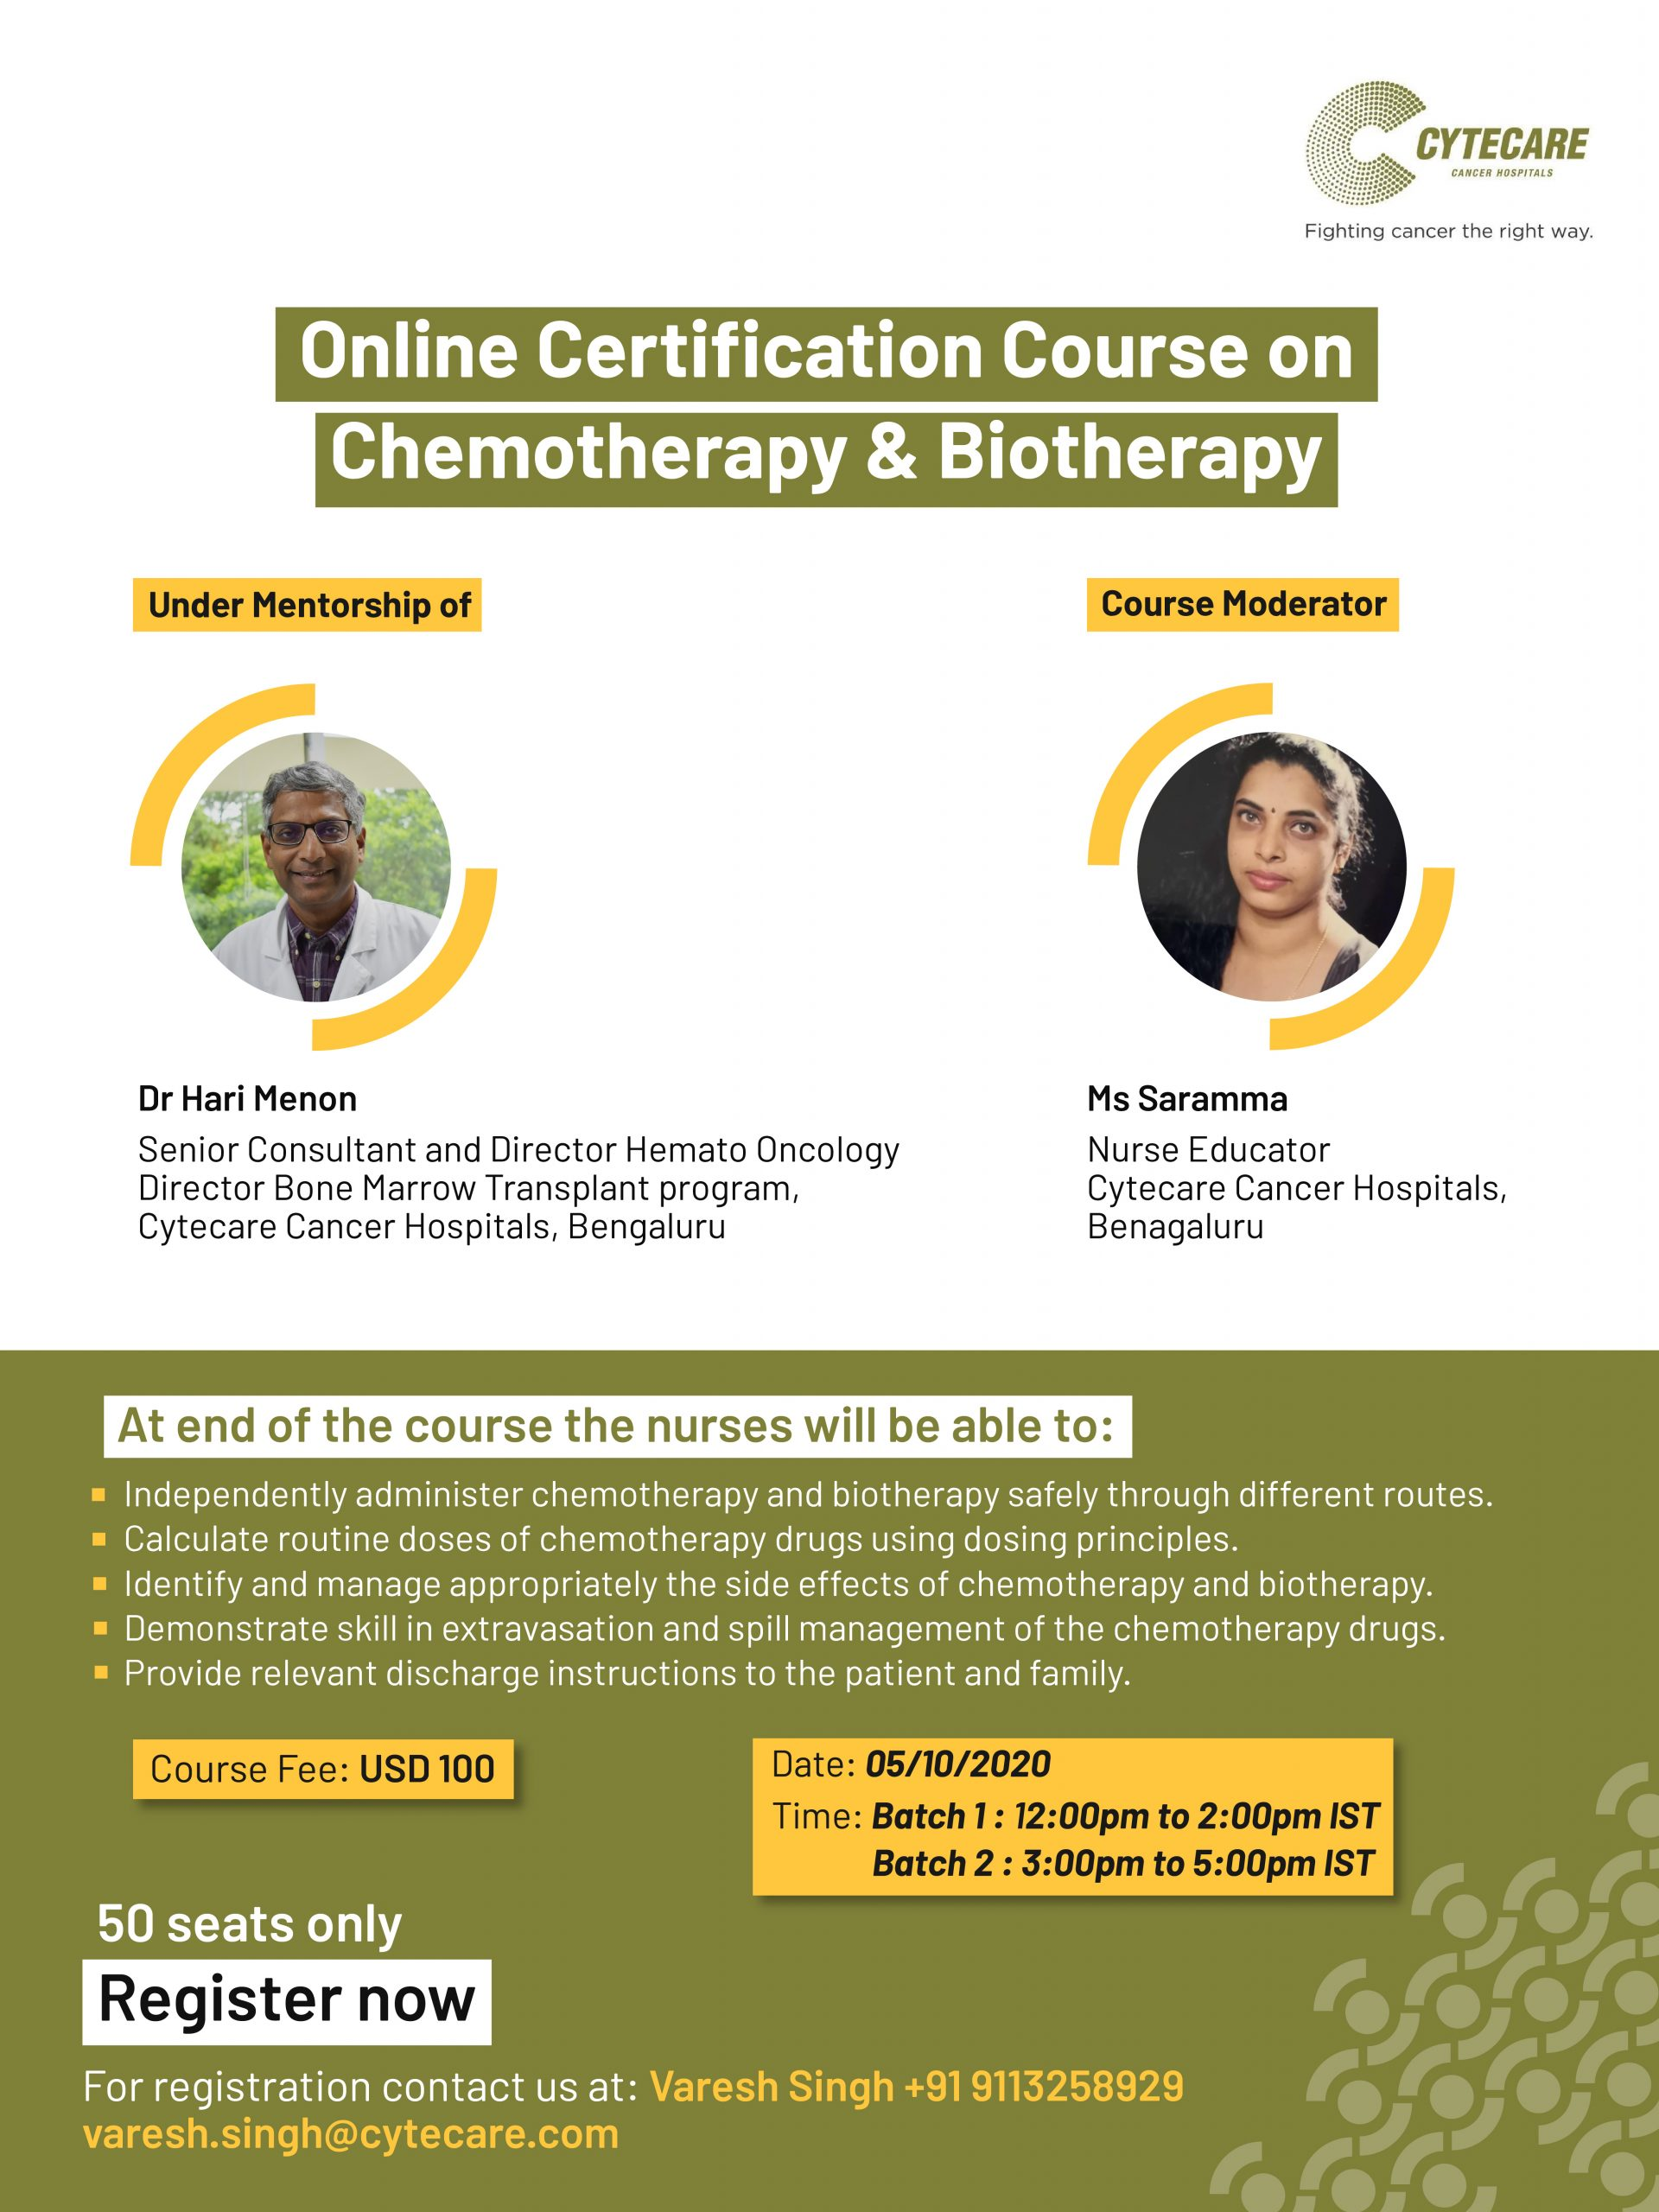 Online Certification Course on Chemotherapy & Biotherapy